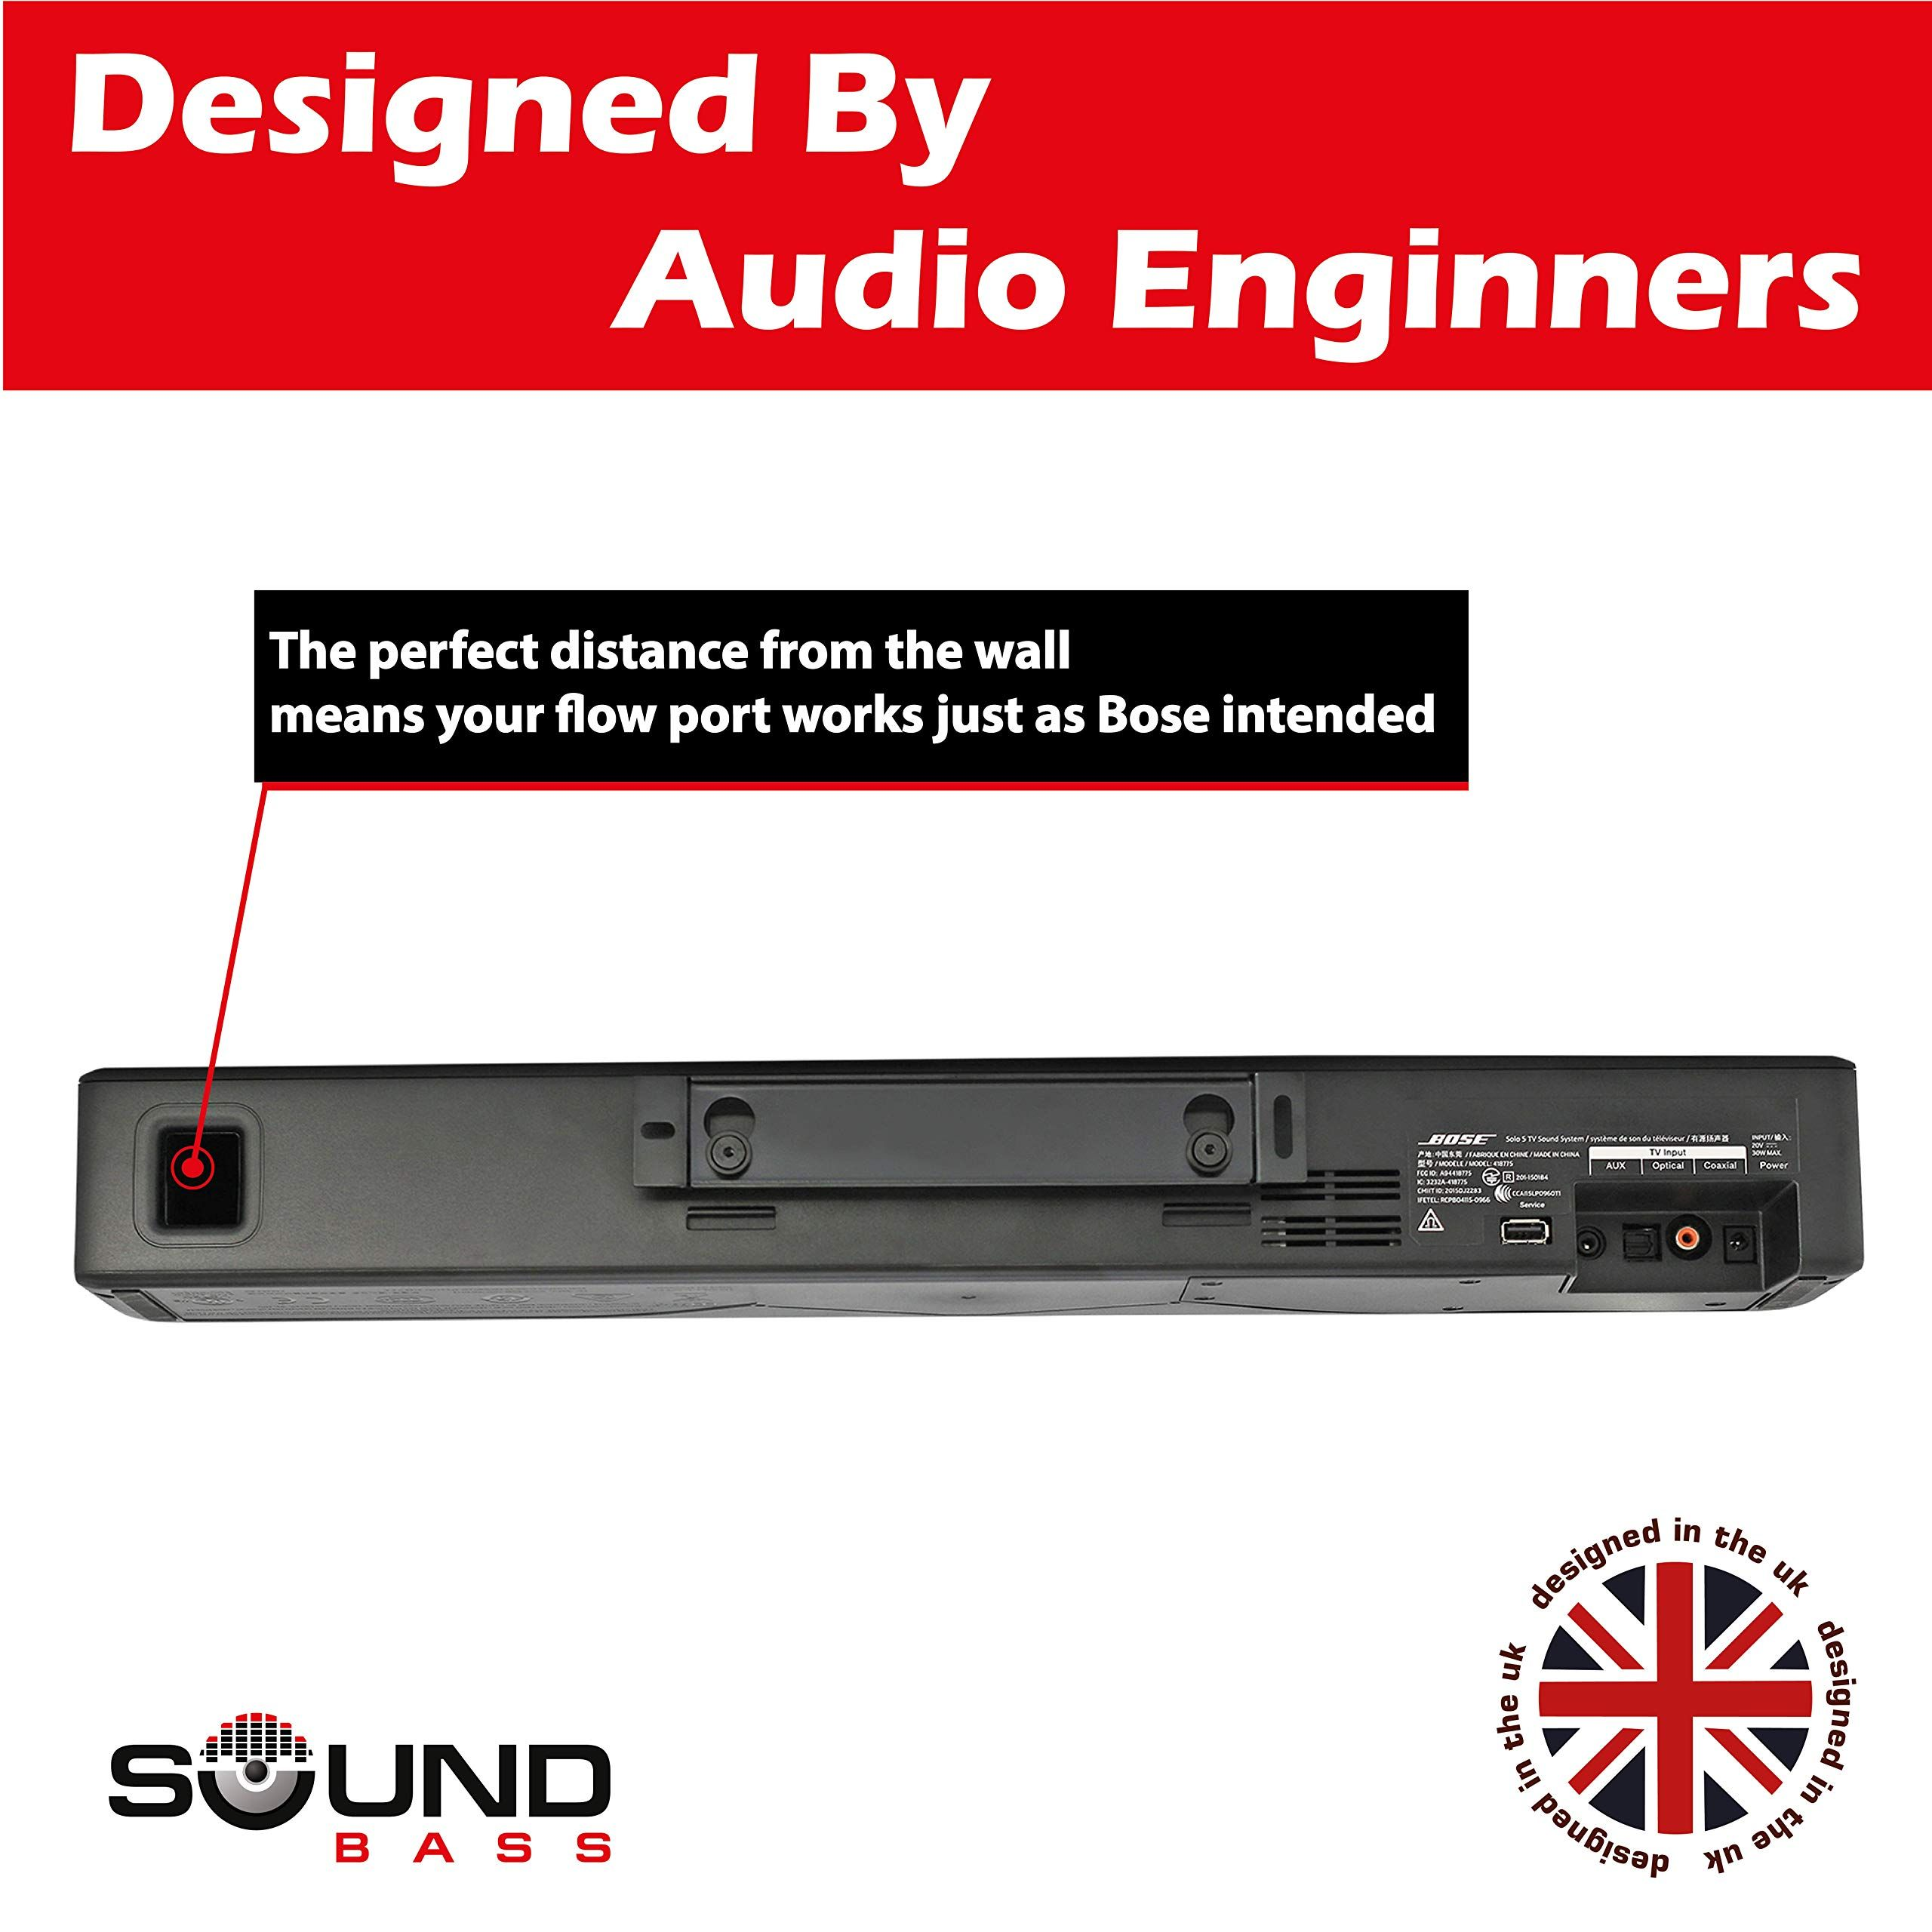 Solo 5 Wall Mount Kit For Bose Solo 5 Complete With All Mounting Hardware Designed In The Uk By Soundbass Kit B Speaker Wall Mounts Design Speaker Brackets